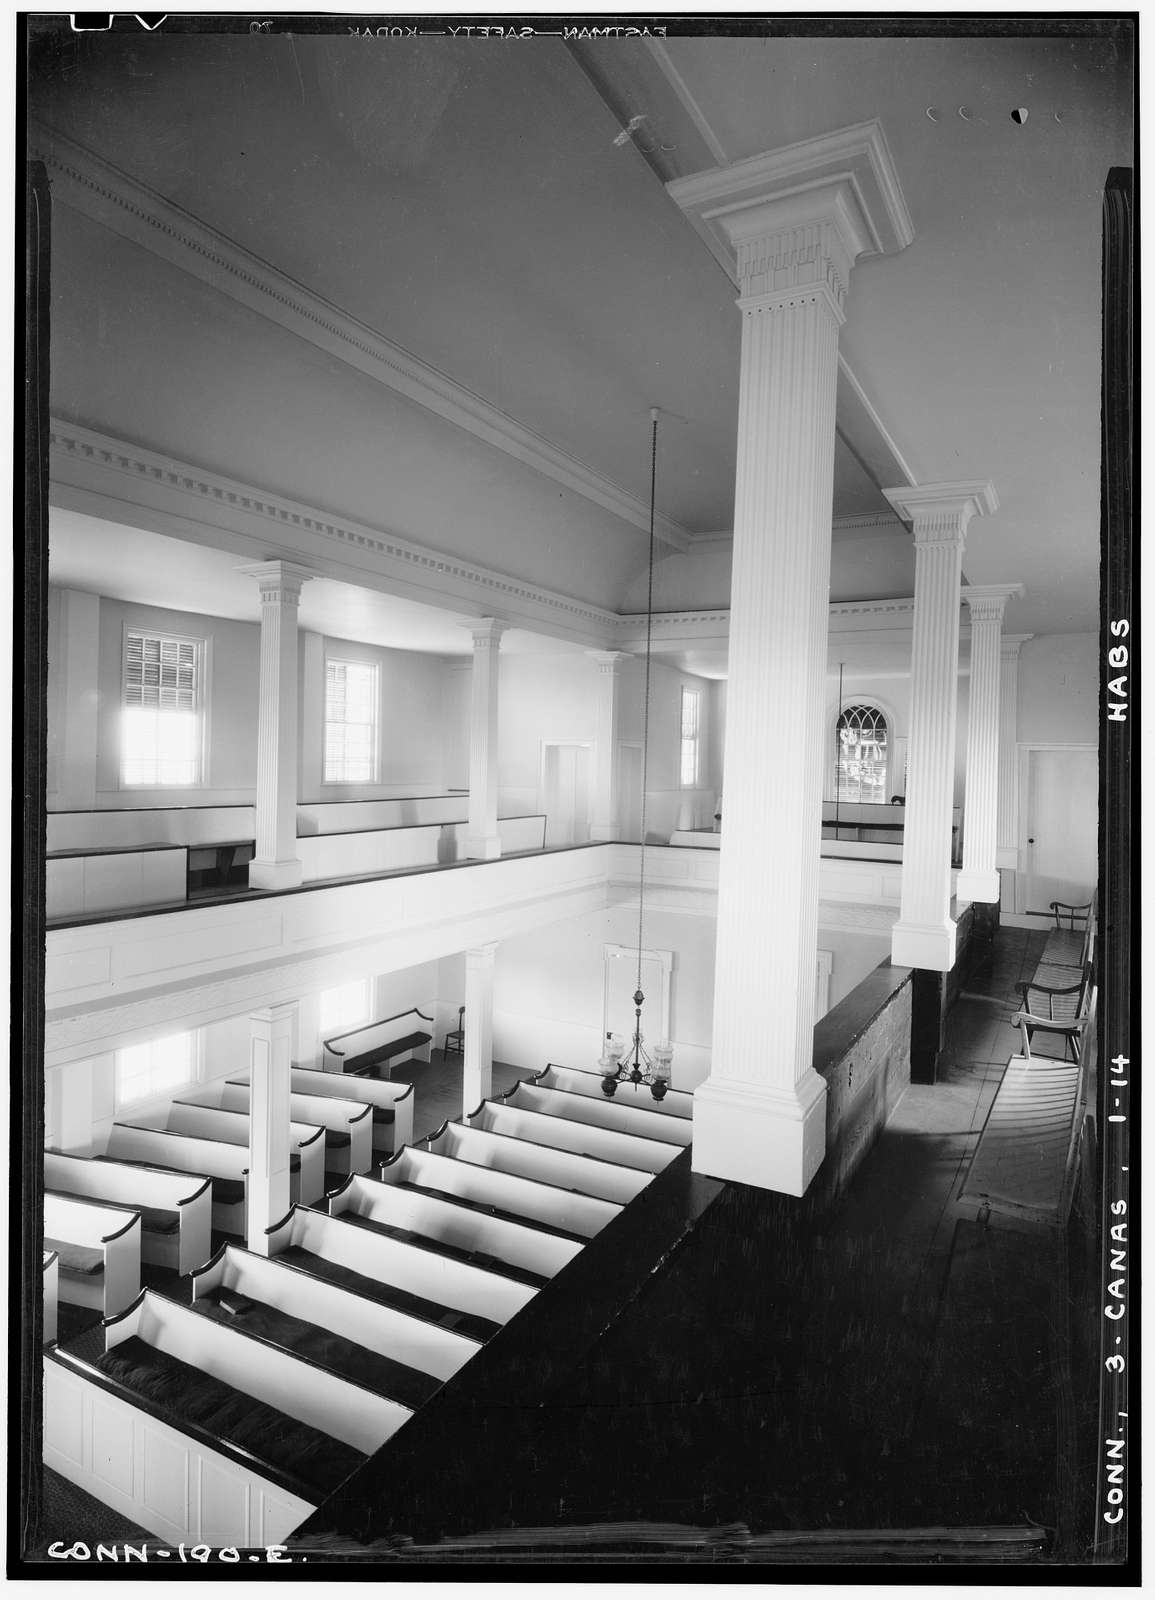 Congregational Church, South Canaan, Litchfield County, CT